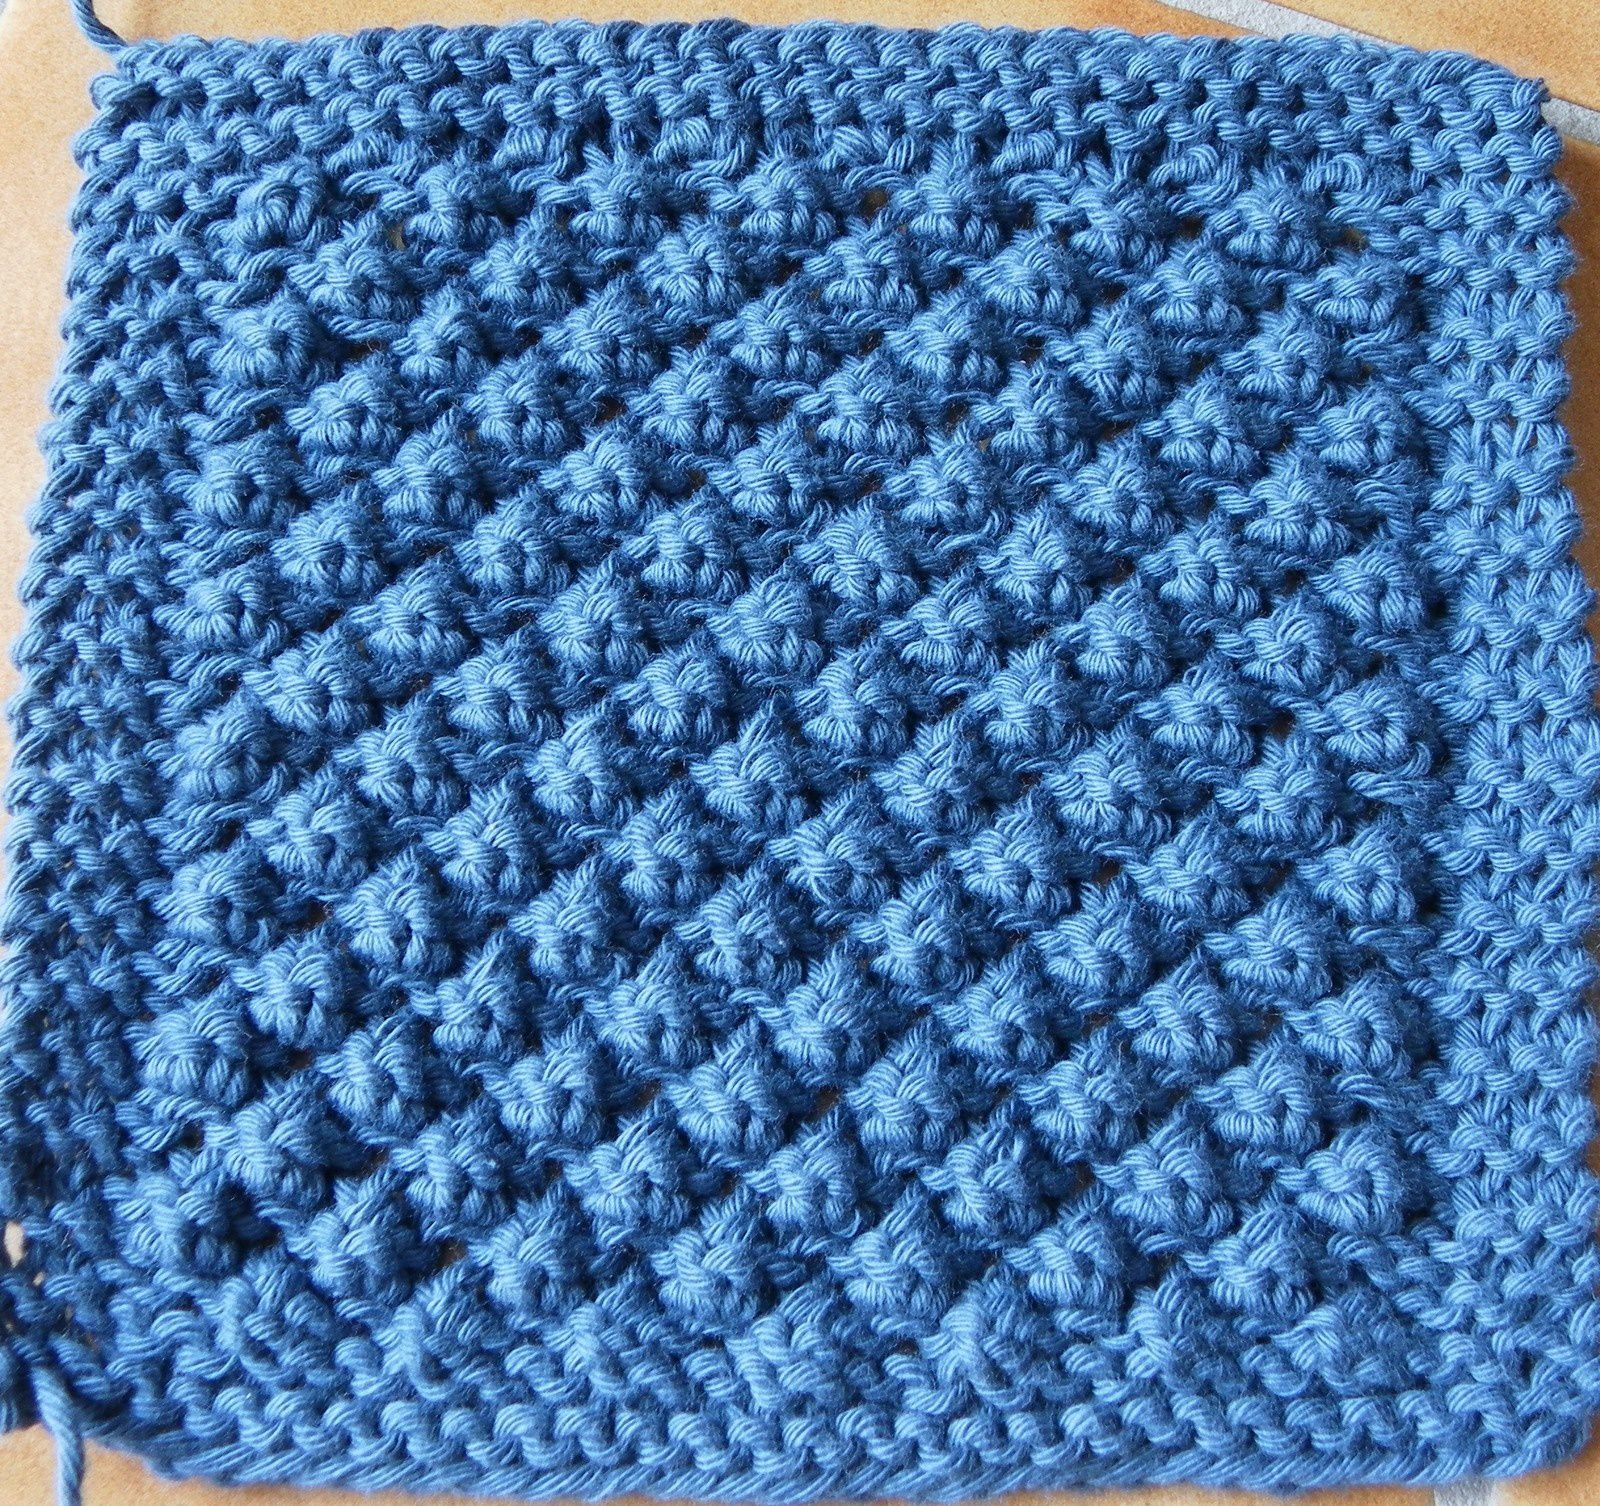 KAL boucle d'or version bébé : carré 15 version A